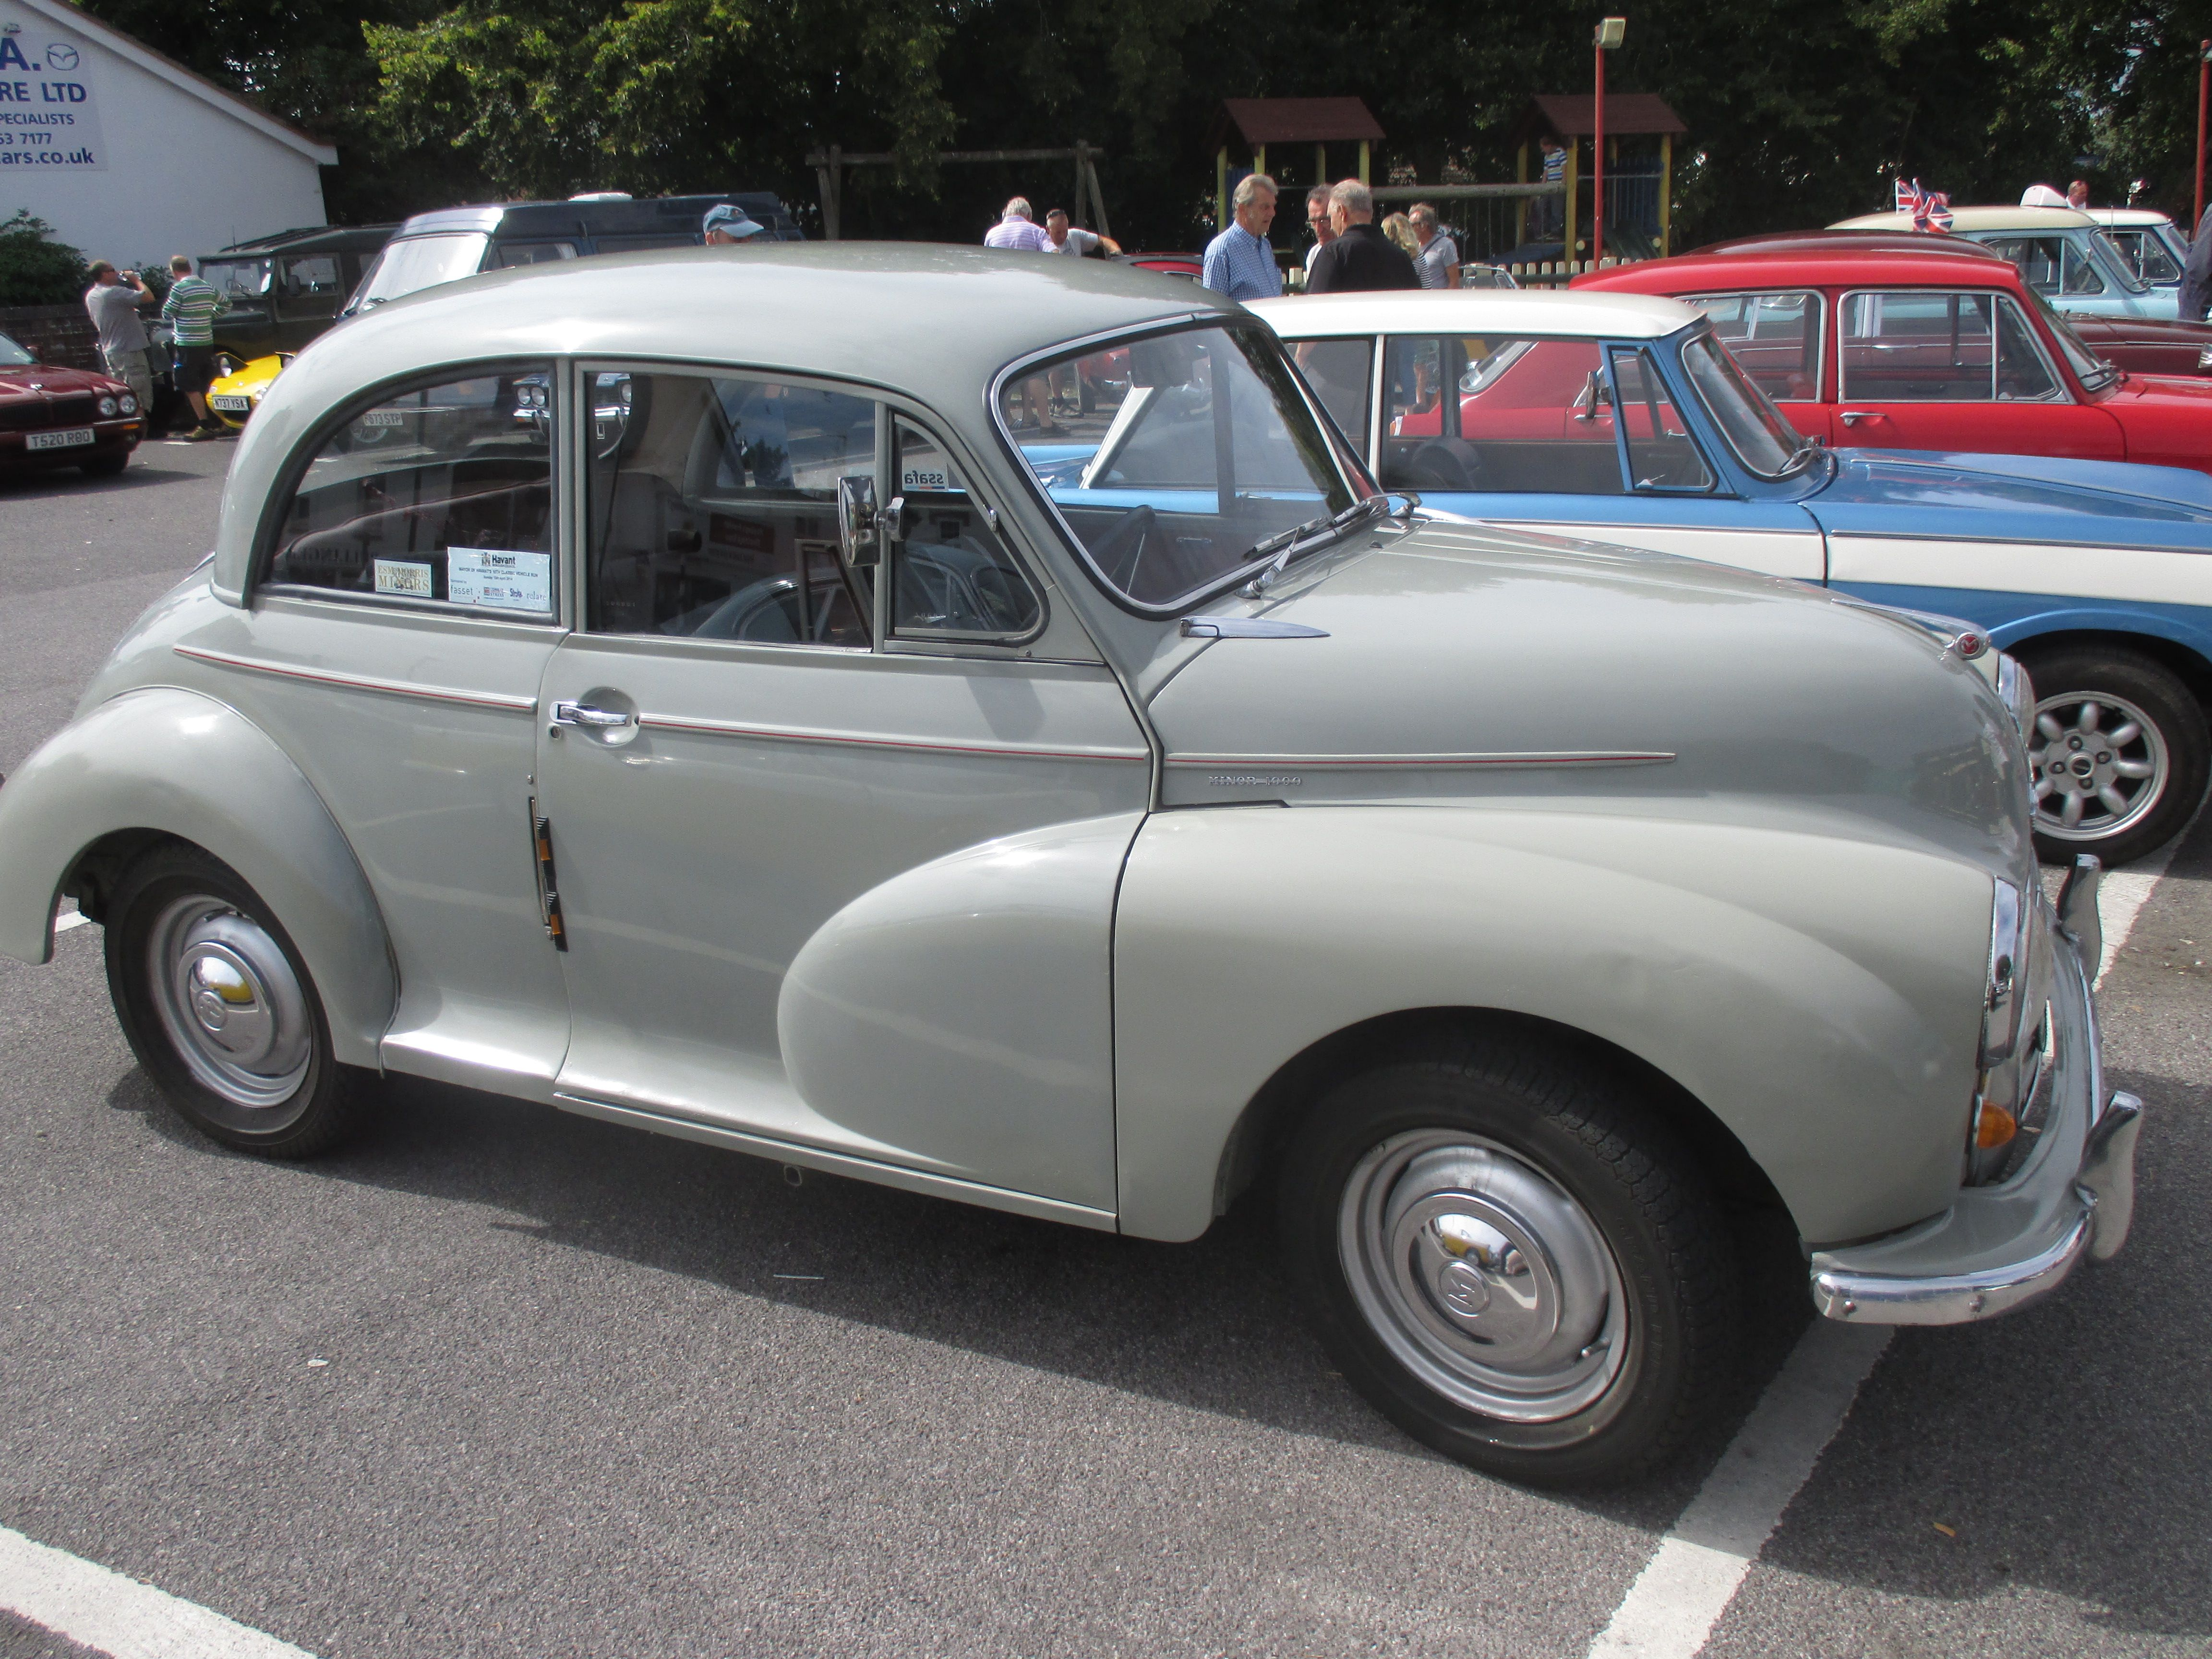 List Of Small Classic Cars Google Search Old Cars Boats - List of old cars